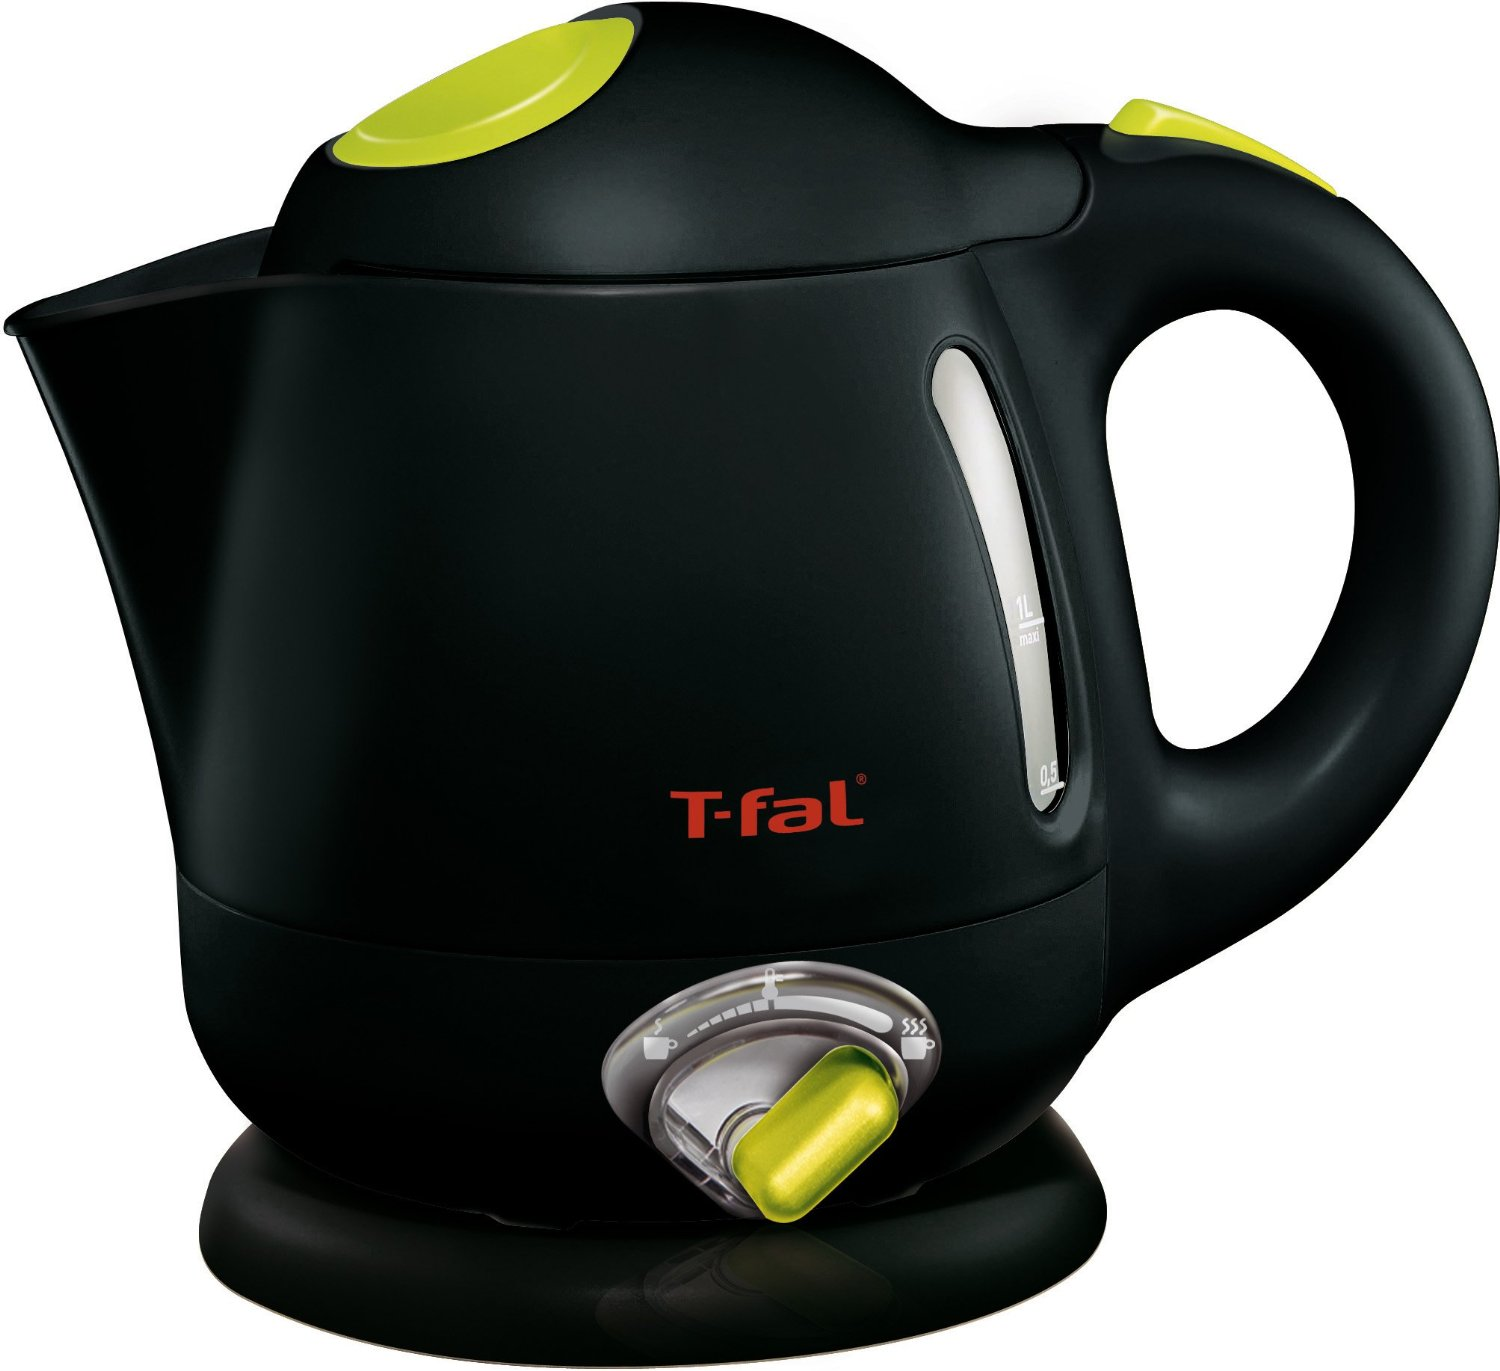 T-fal BF6138 Electric Kettle 1 Liter, Black